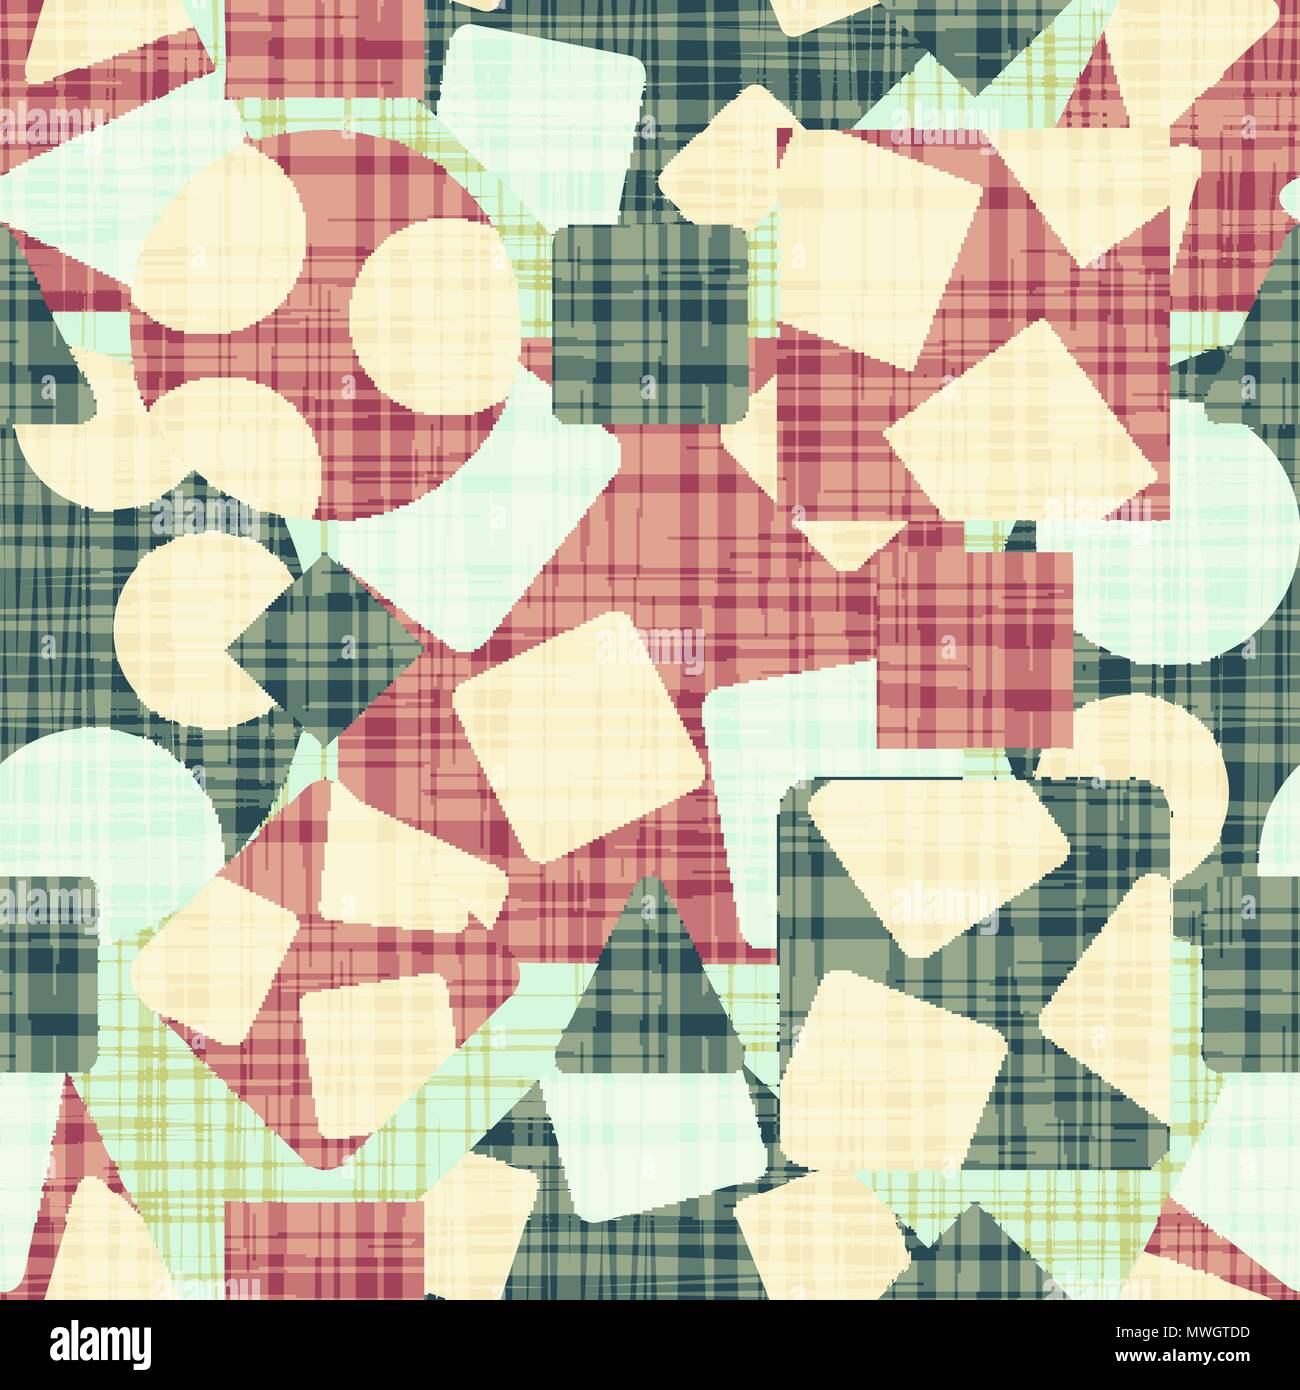 Retro design cloth with geometric shapes - Stock Image